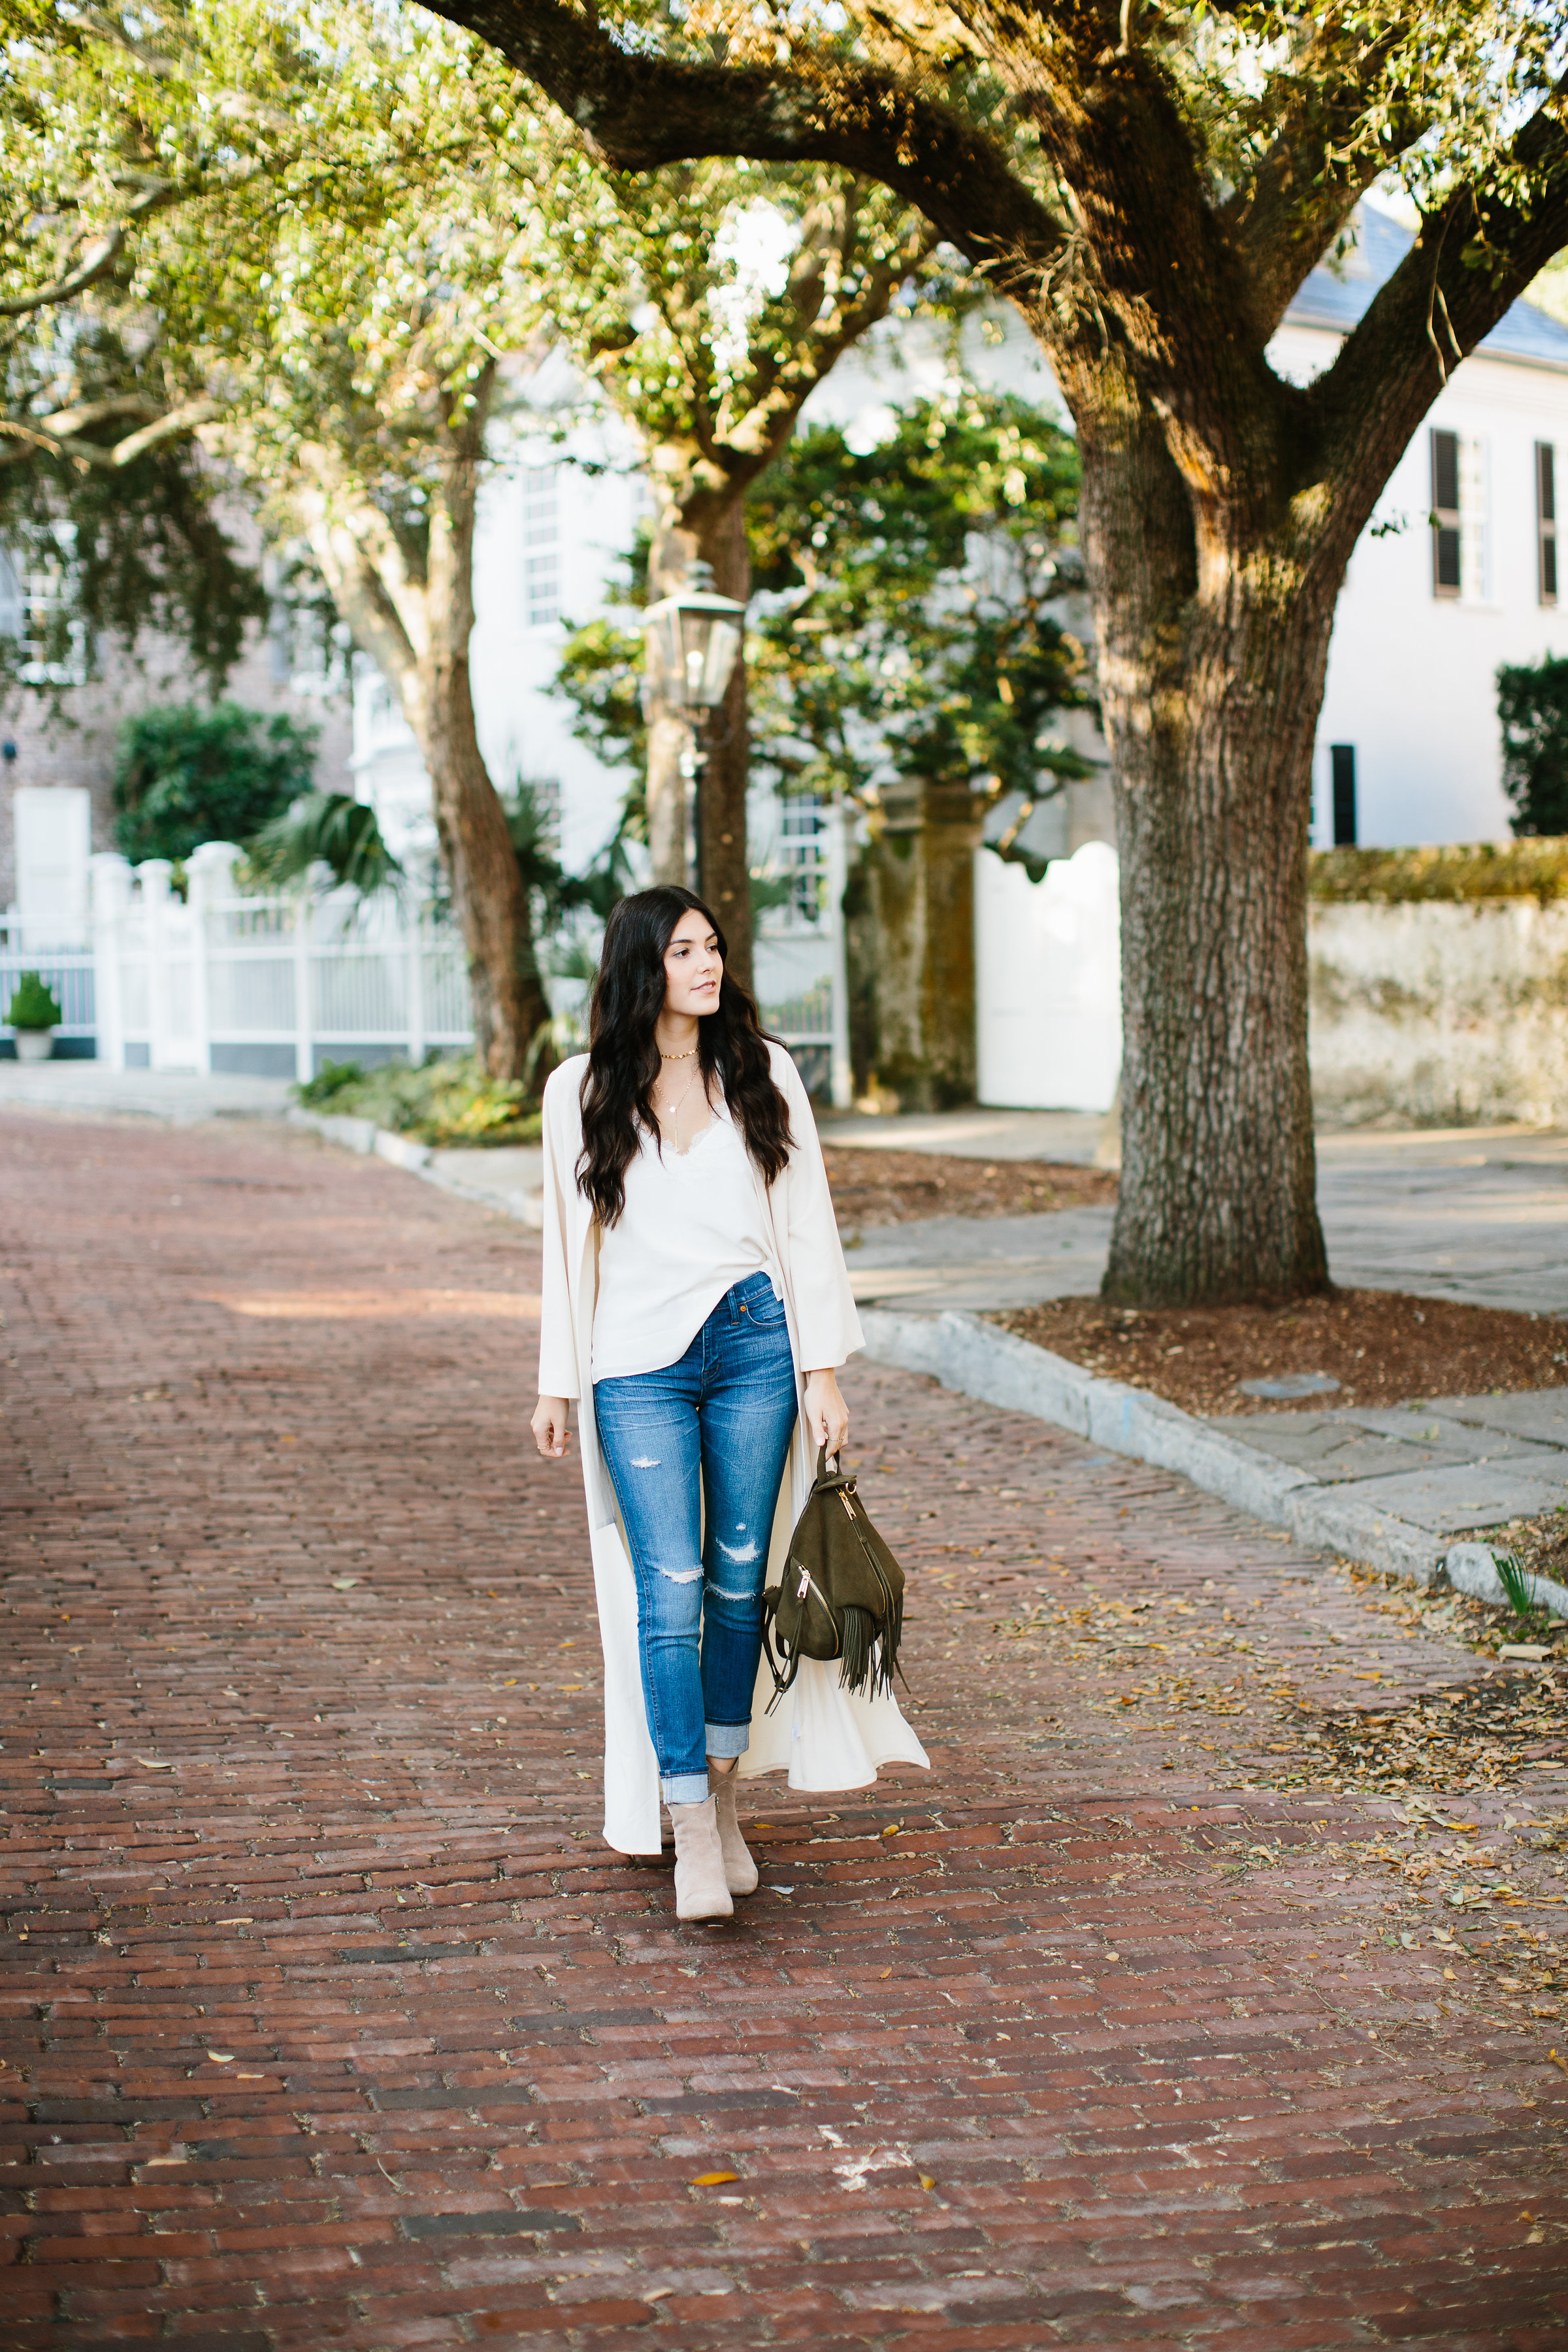 Julia Friedman wearing a Nude Duster Coat Rebecca Minkoff Backpack with Madewell Jeans and Steve Madden Suede Booties and a white lace trim top.